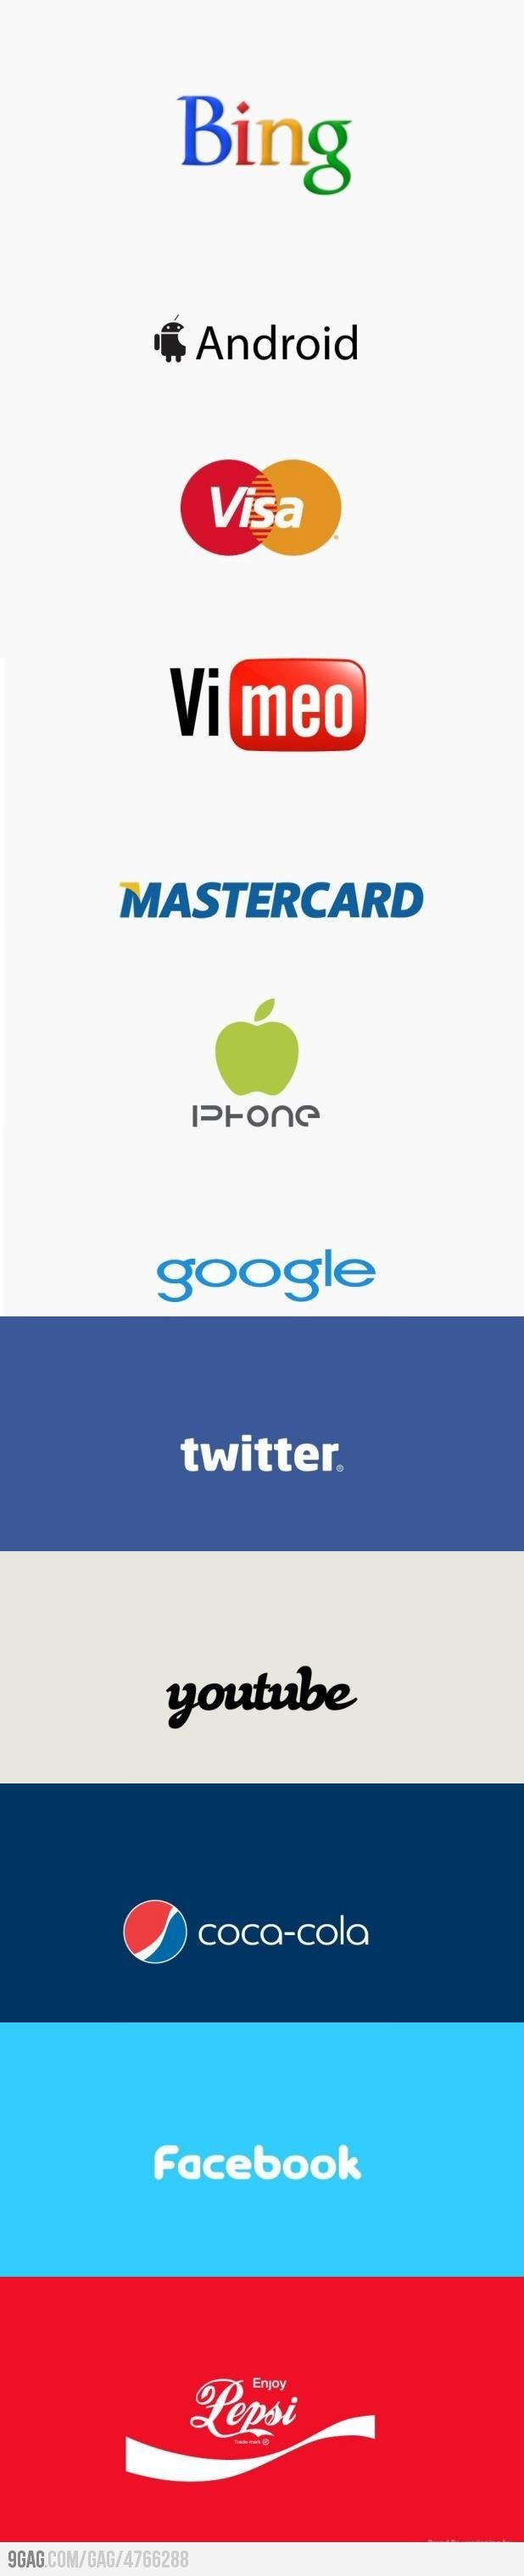 32 best Logos / Web Icon images on Pinterest | Graph design, Charts ...